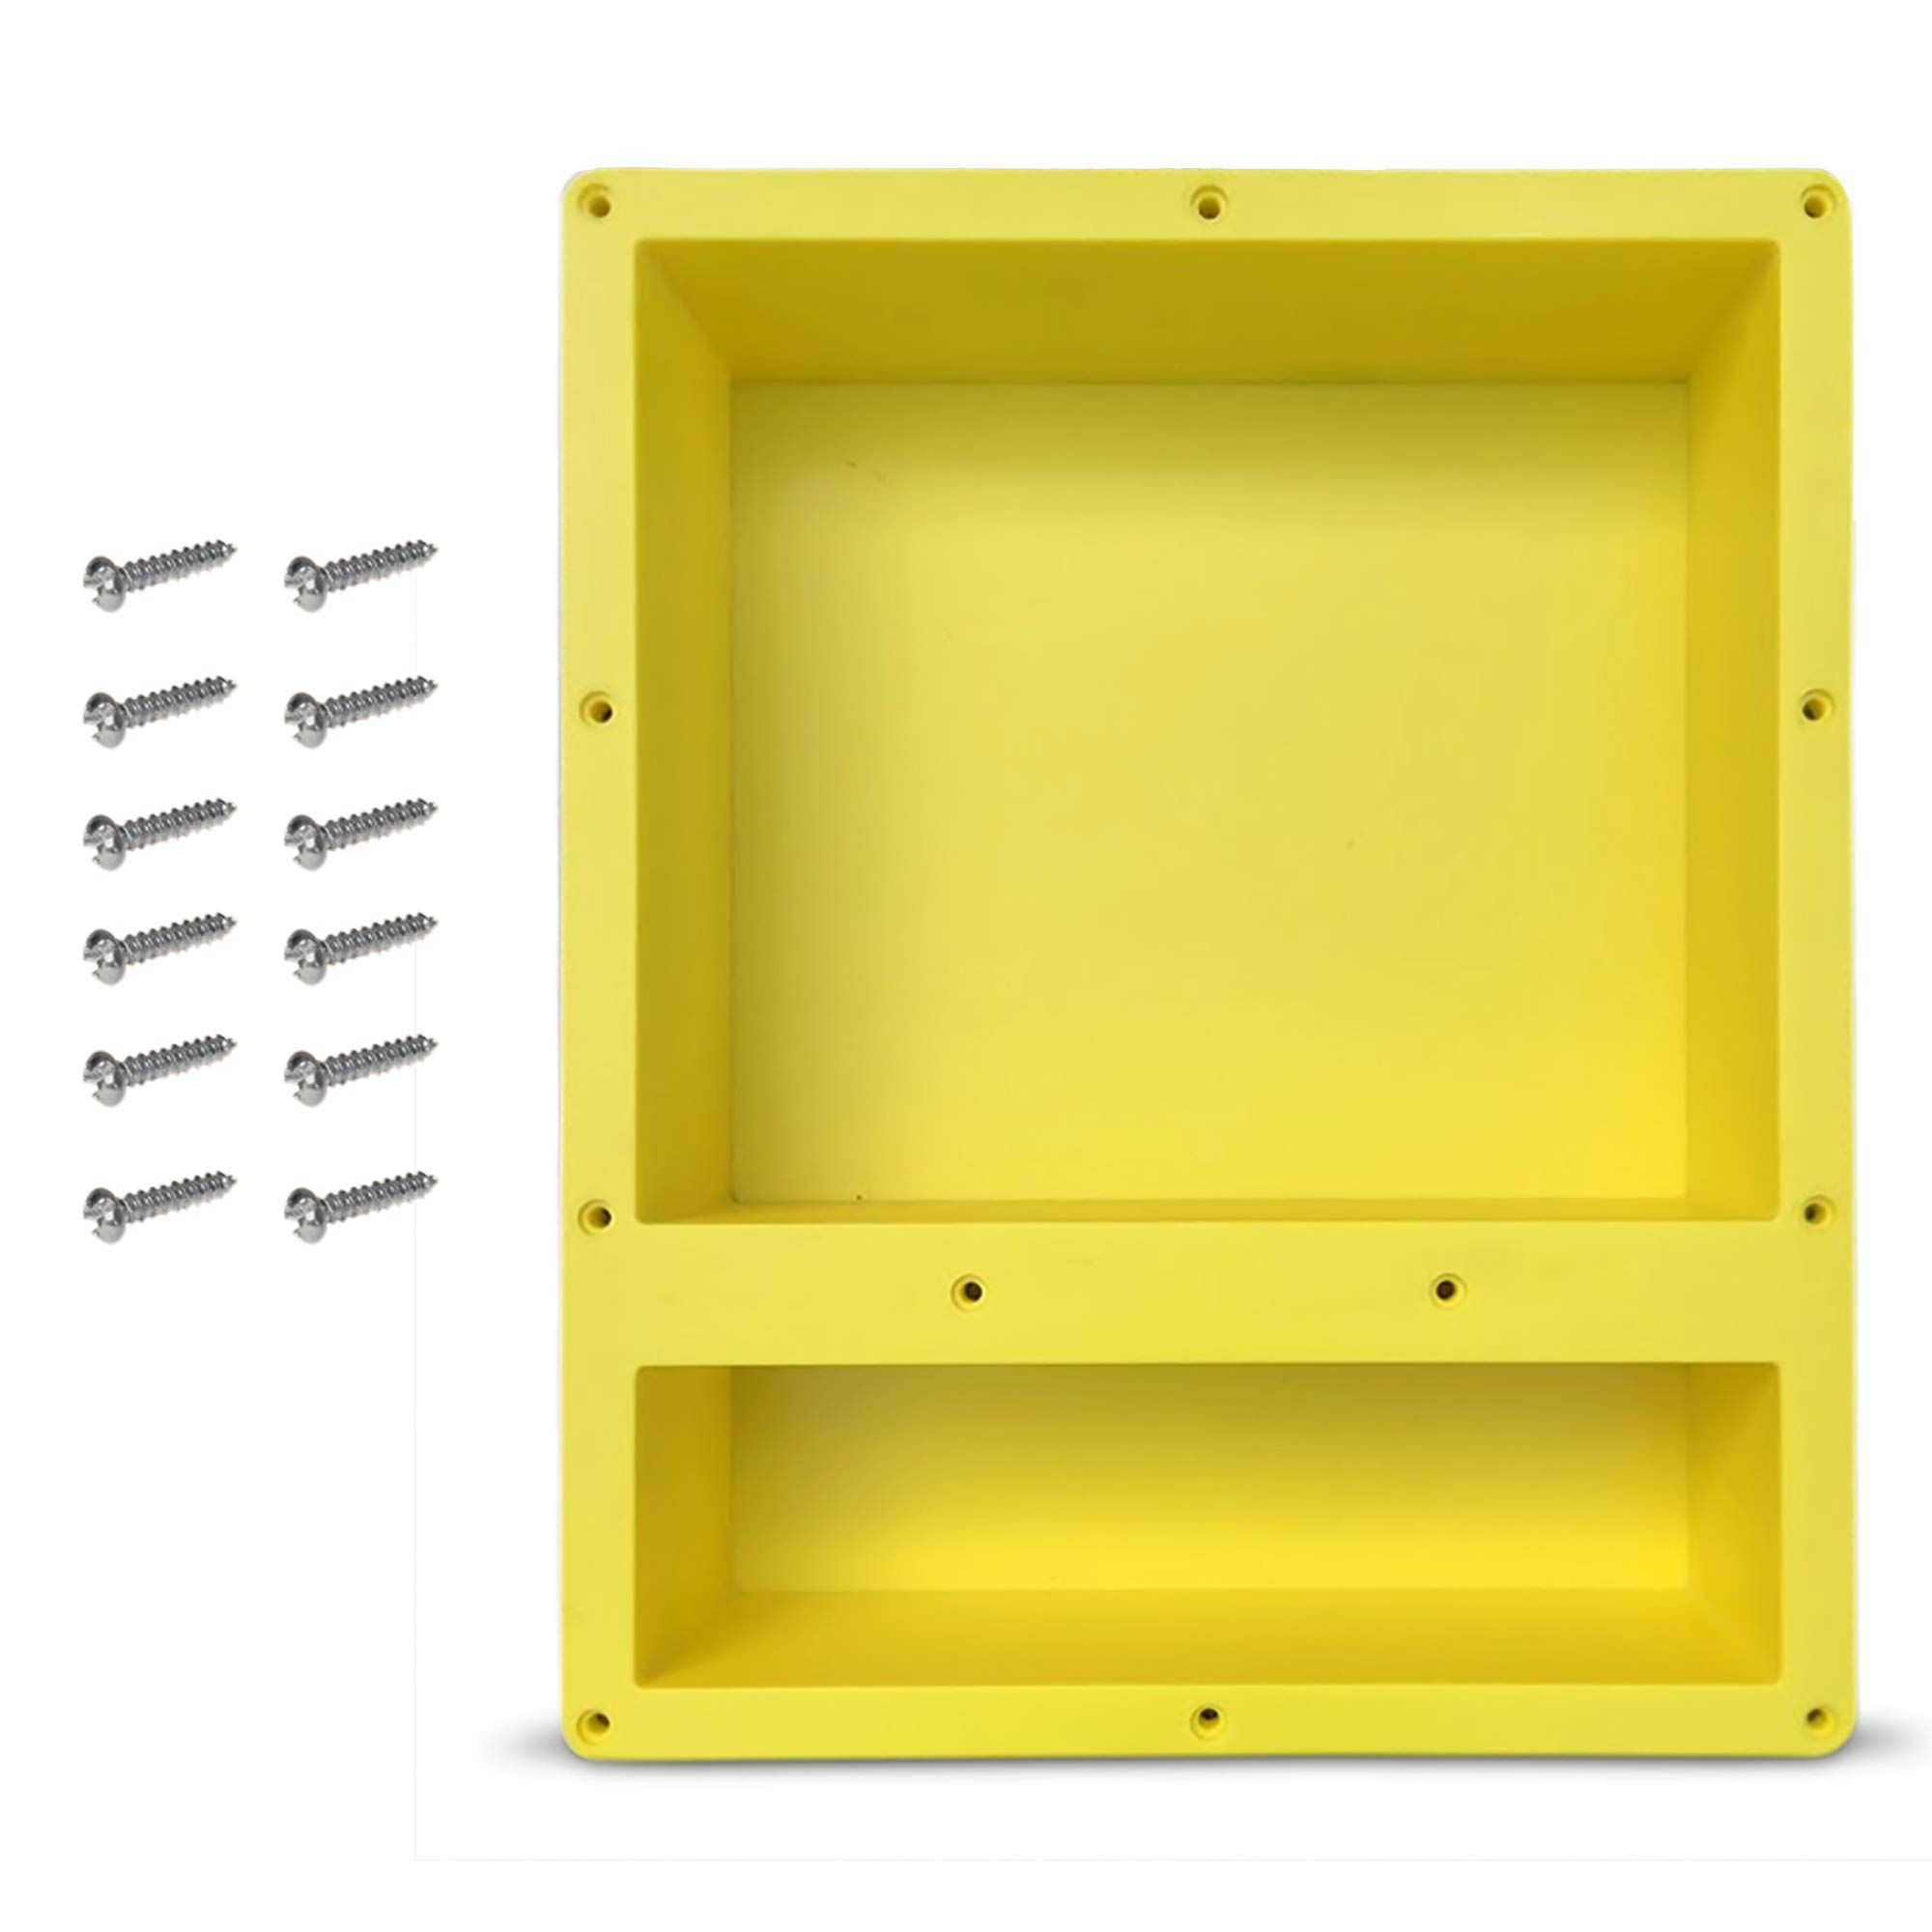 16'' x 20'' Double Shelf Recessed Shower Niche with Mounting Screws included, Mounts Flush with 1/2'' Backerboard, Ready to Tile, Easy to Install and Waterproof, by Novalinea